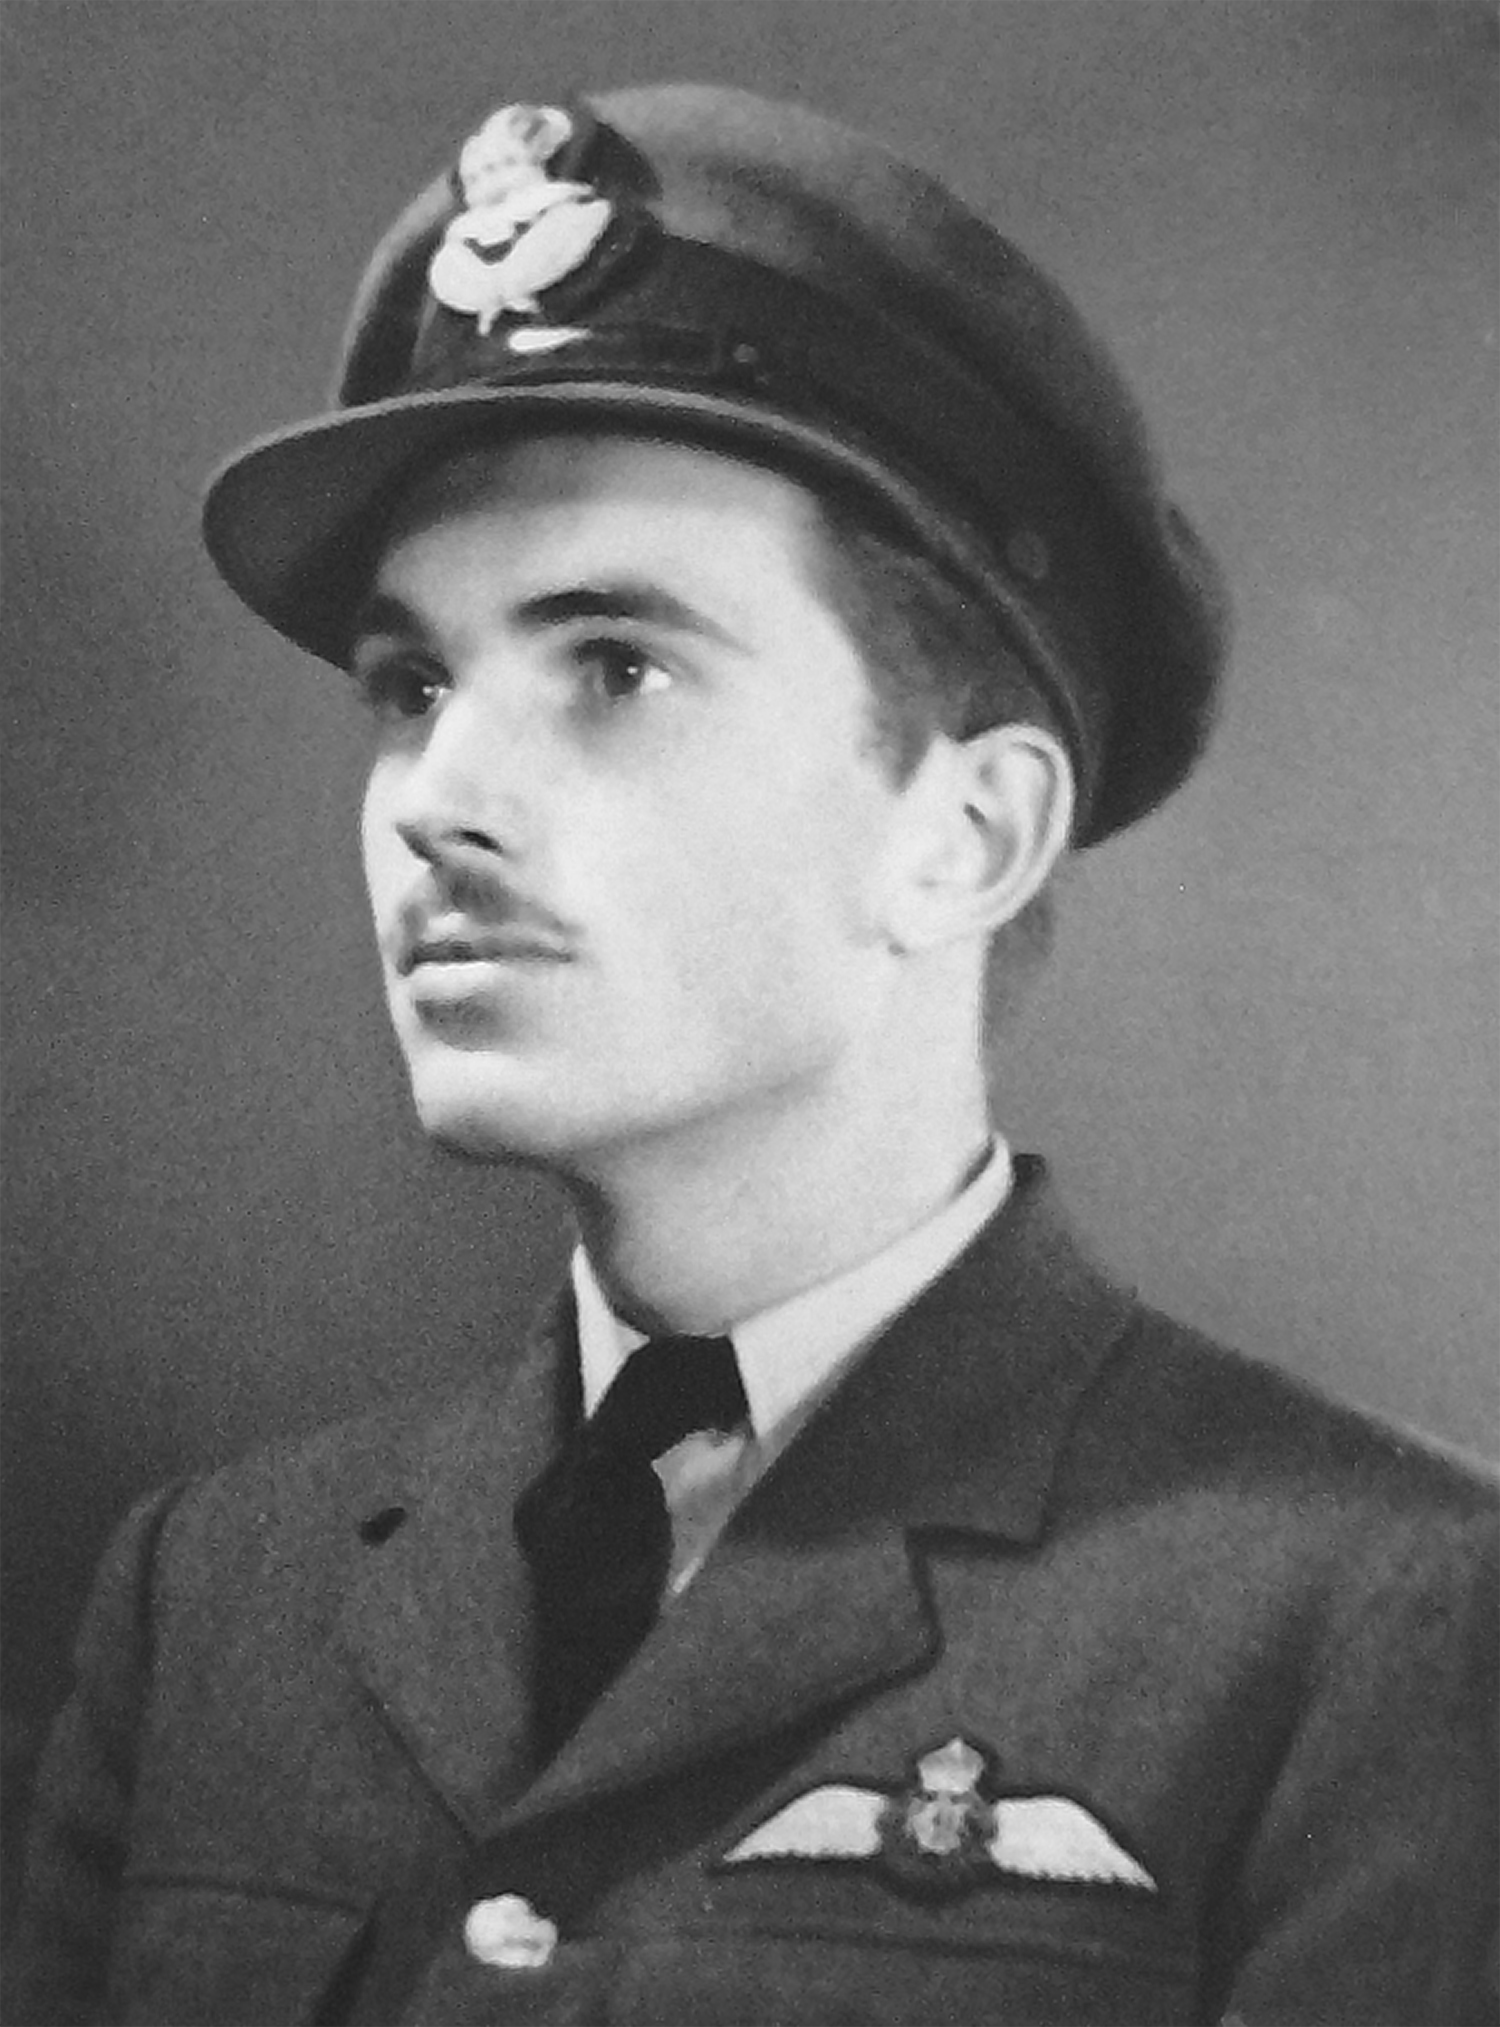 A head and shoulders, black and white photo of a young man in a military uniform, wearing a hat, with pilot's wings over his left tunic pocket.